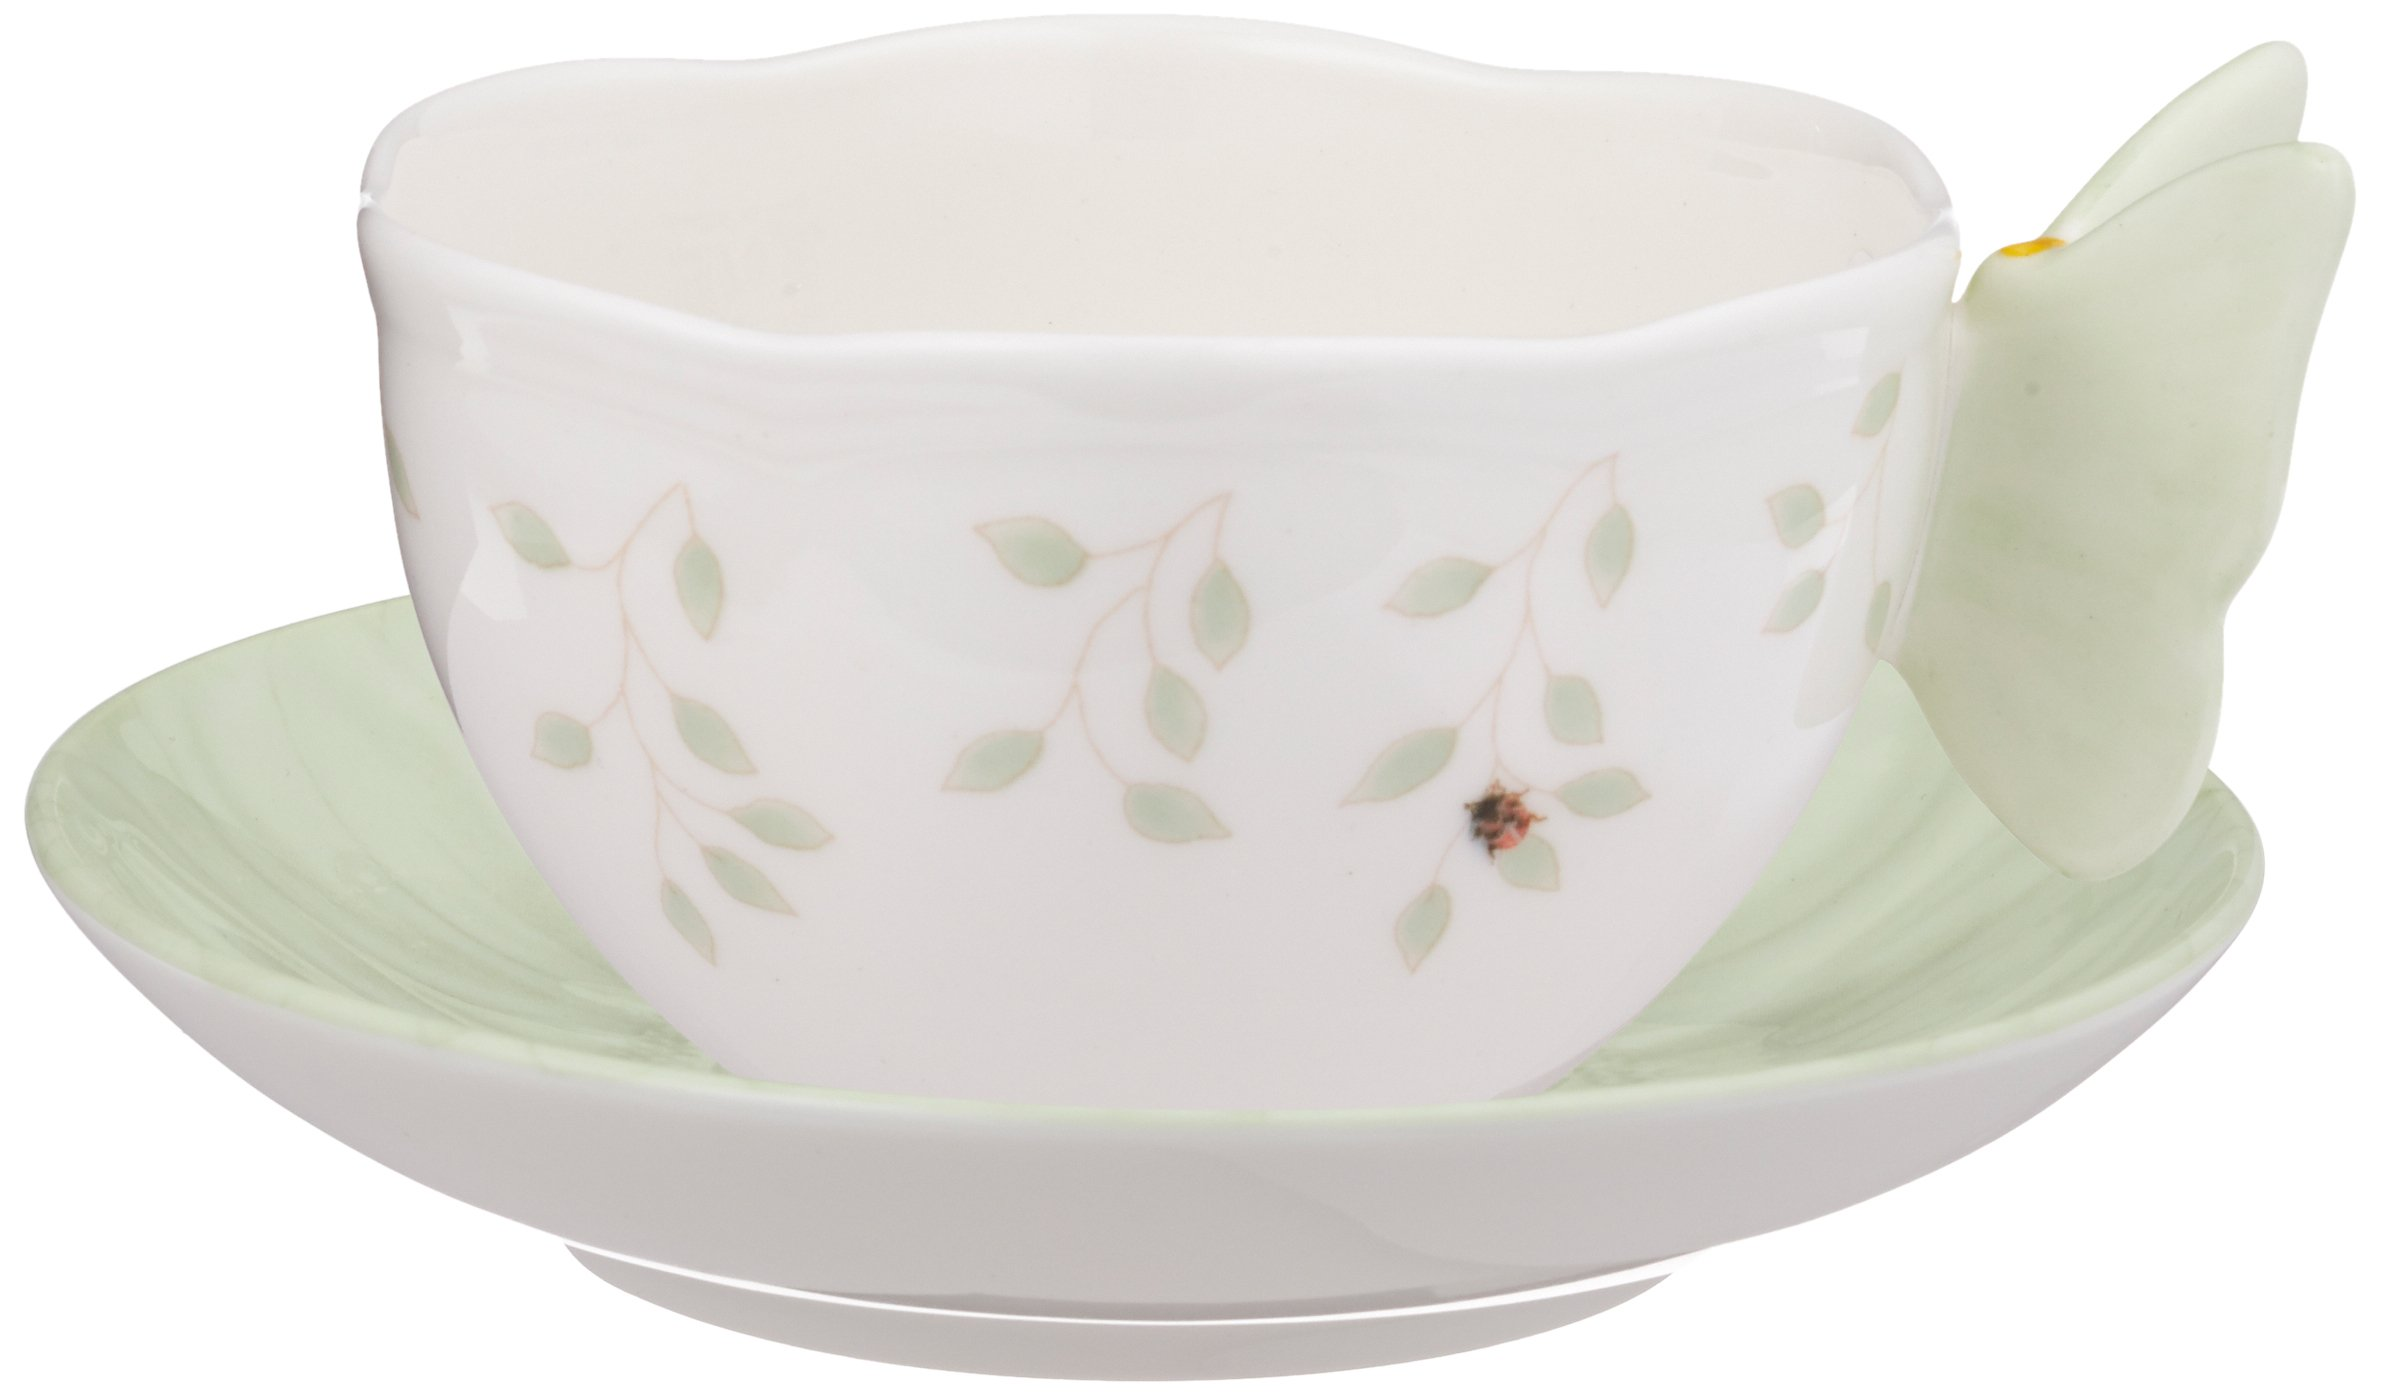 Lenox 817135 Butterfly Meadow Figural Green Cup and Saucer, 0.95 LB, White